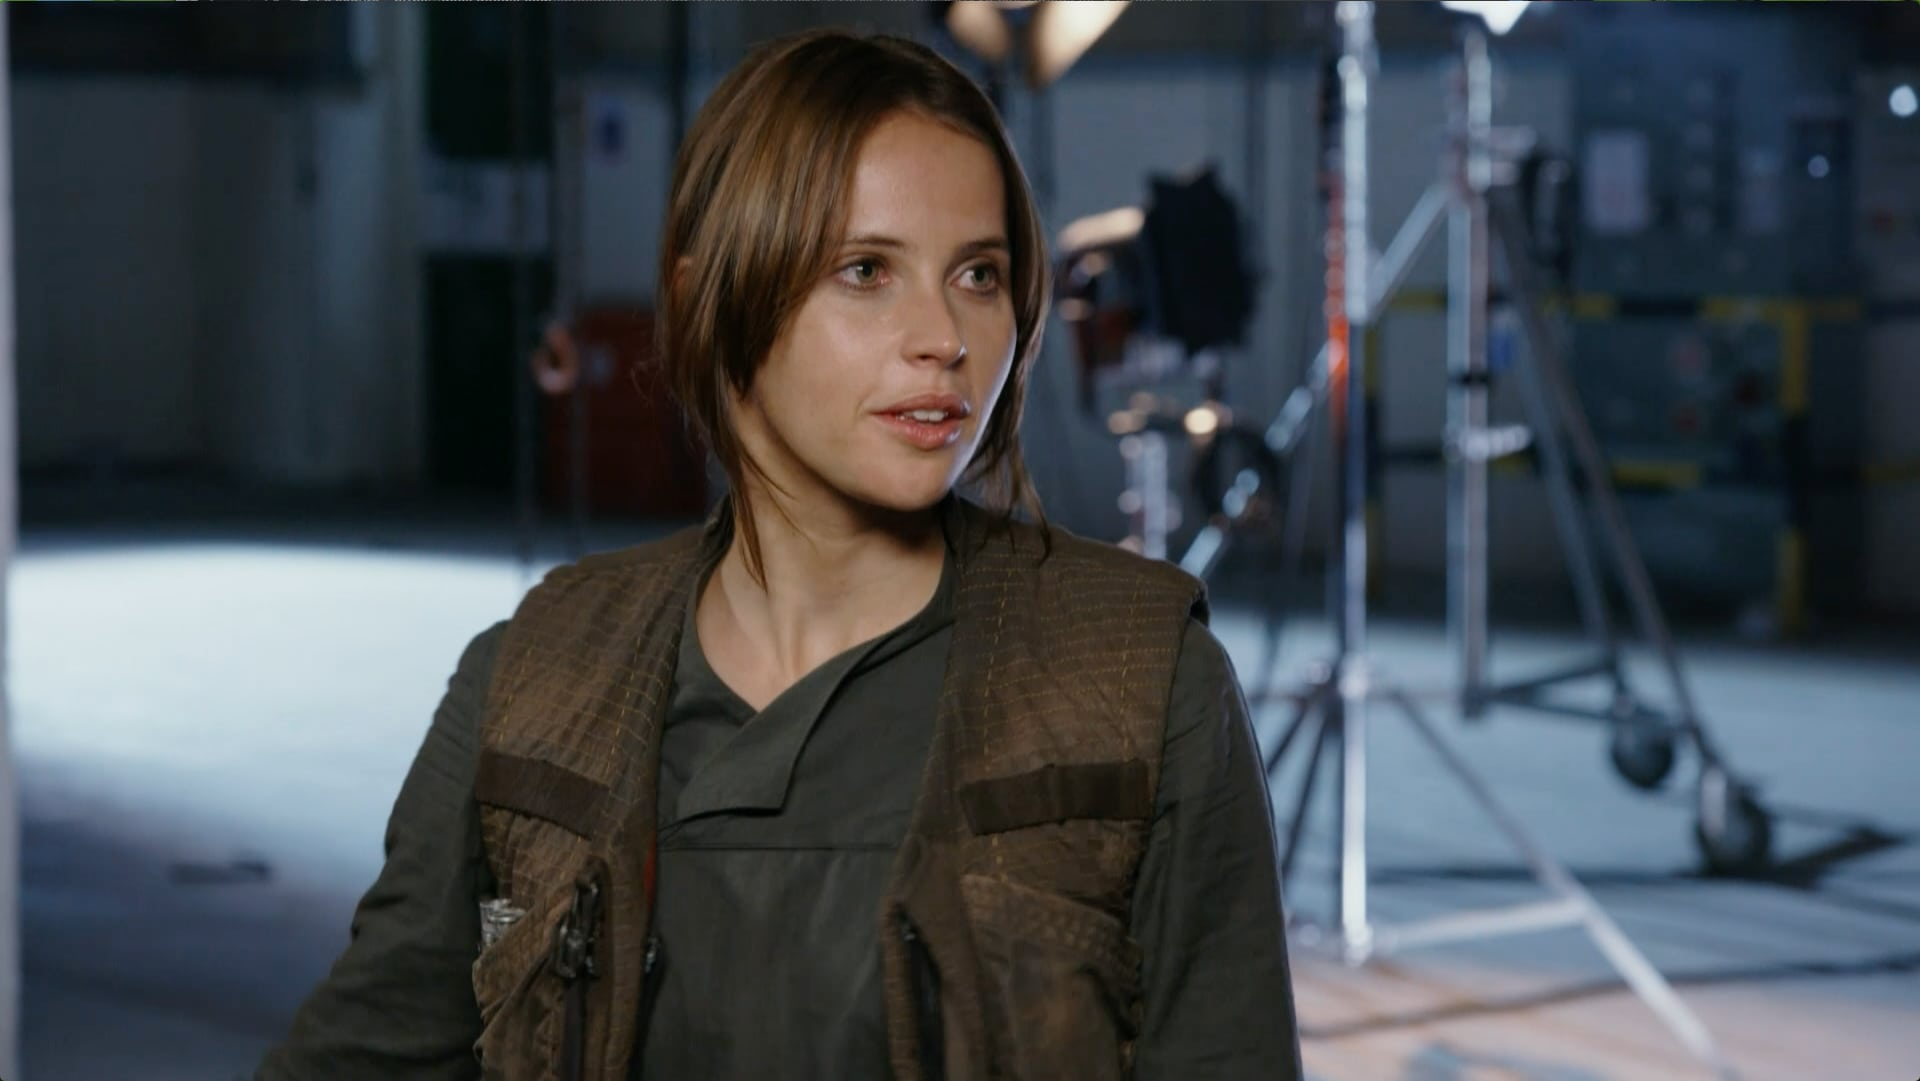 Felicity Jones, a protagonista de Rogue One